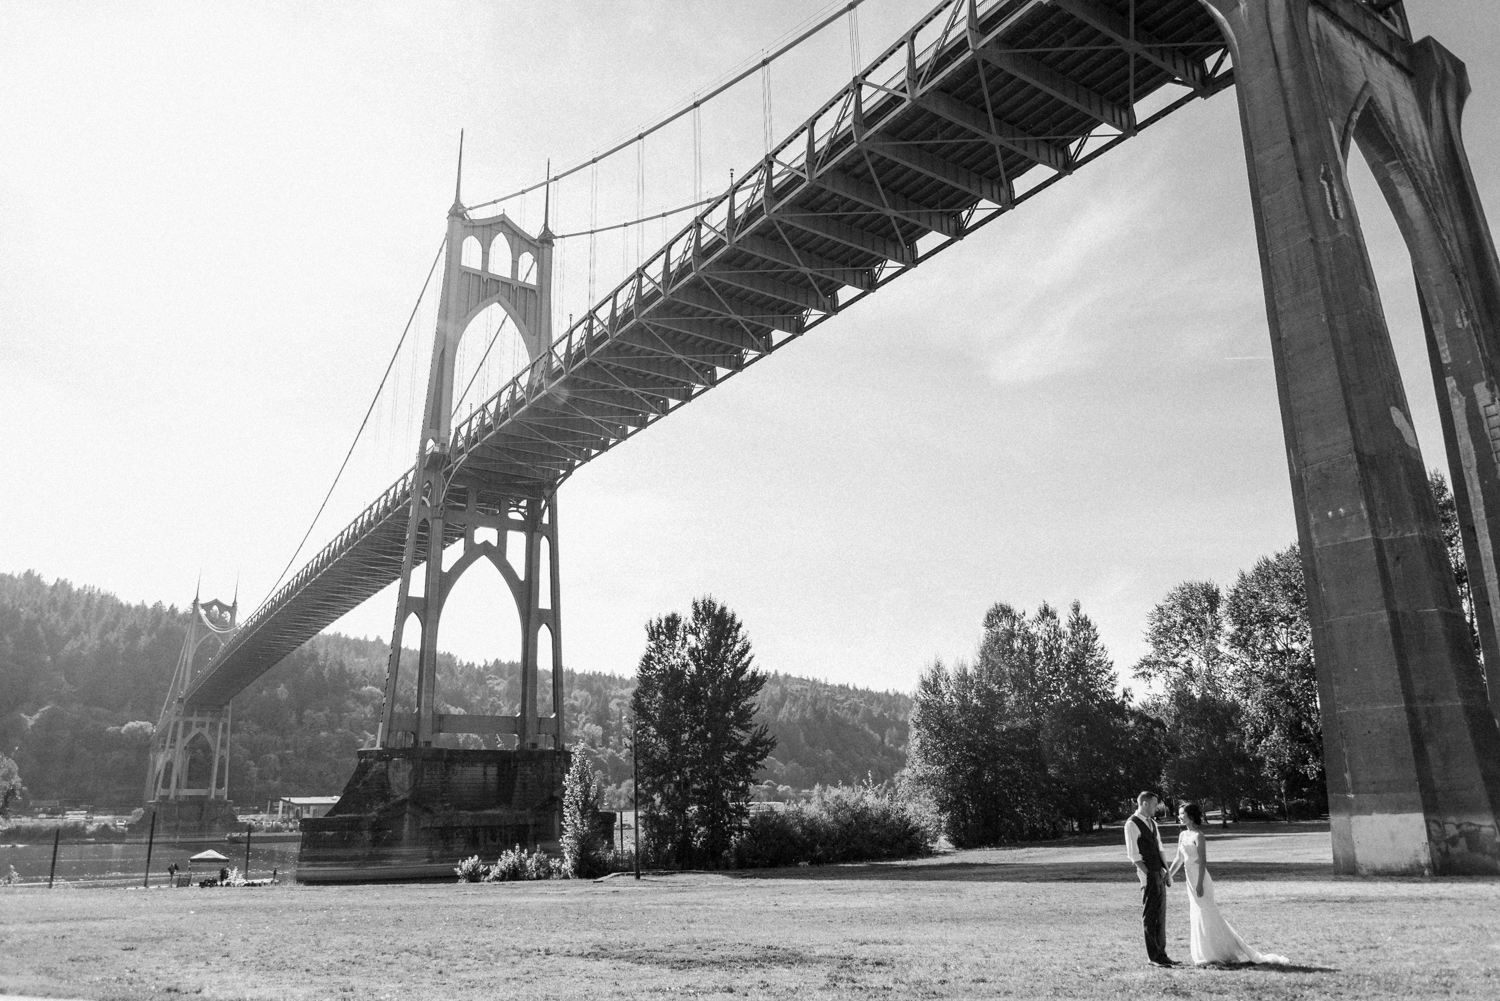 cathedral-park-wedding-st-johns-bridge-portland-shelley-marie-photo-8.jpg